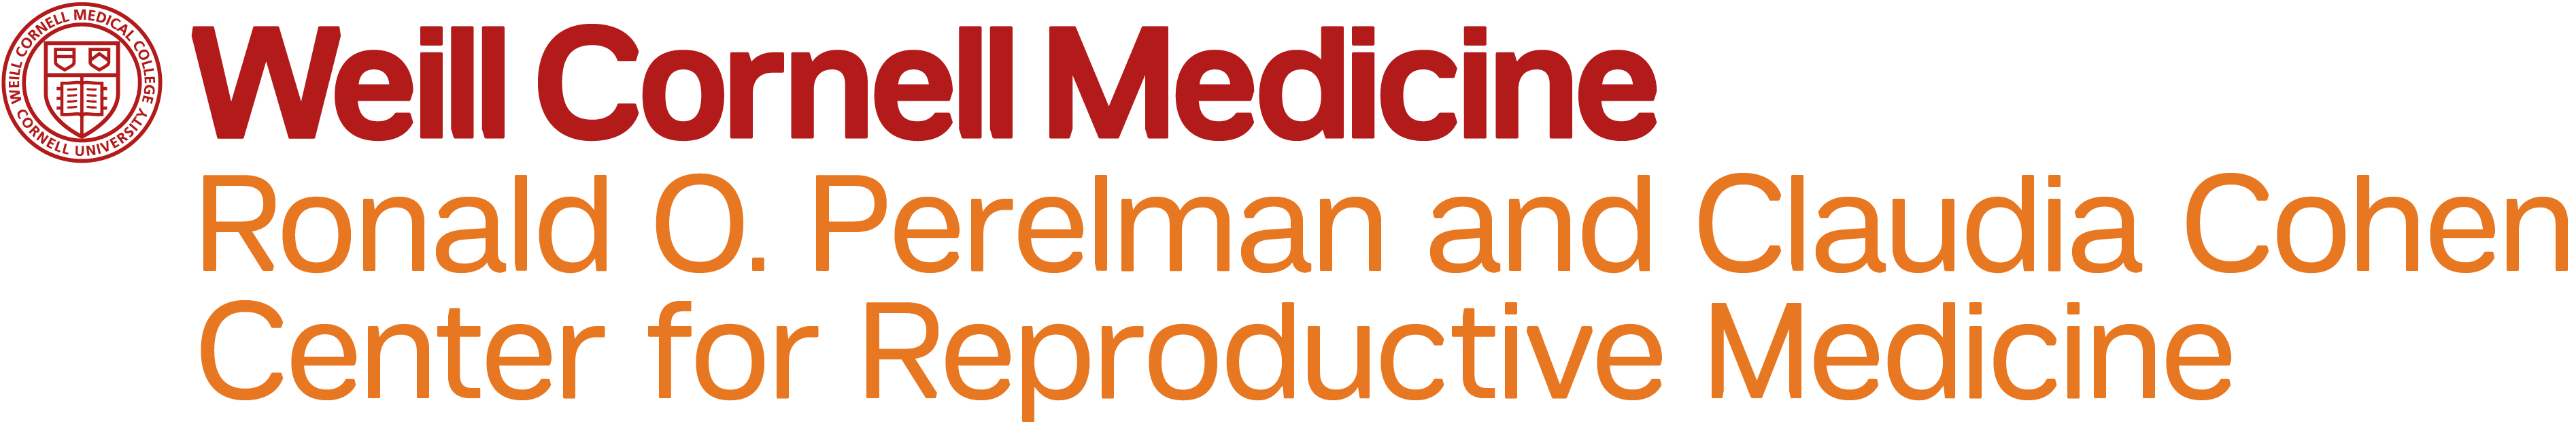 Ronald O. Perelman and Claudia Cohen Center for Reproductive Medicine